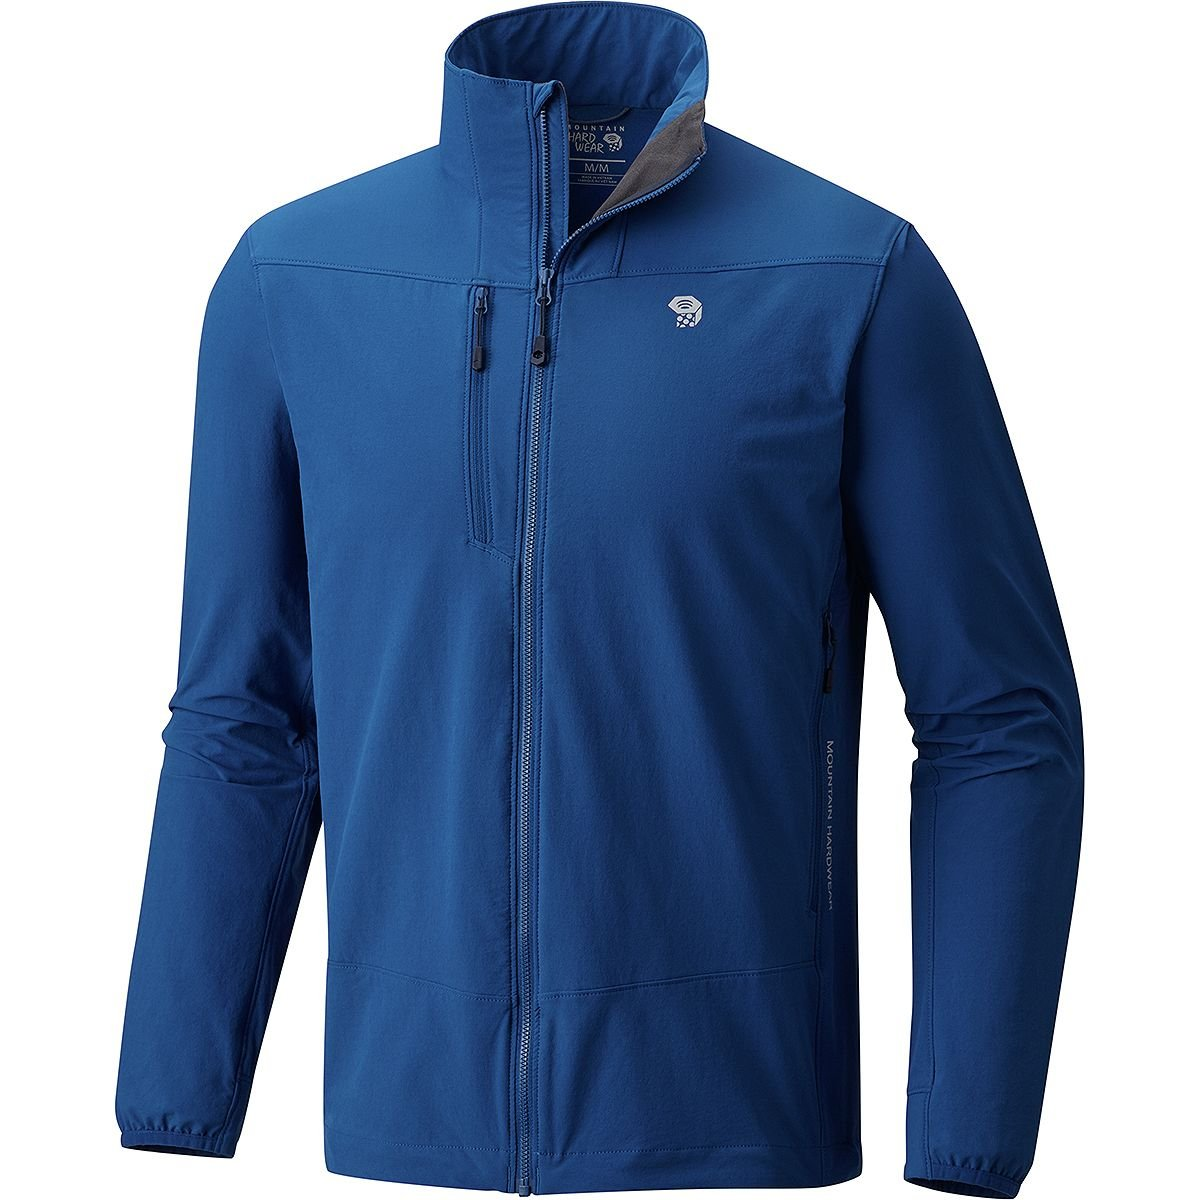 Mountain Hardwear Super Chockstone Jacket – Men 's B079H26DYZ Large|Nightfall Blue Nightfall Blue Large